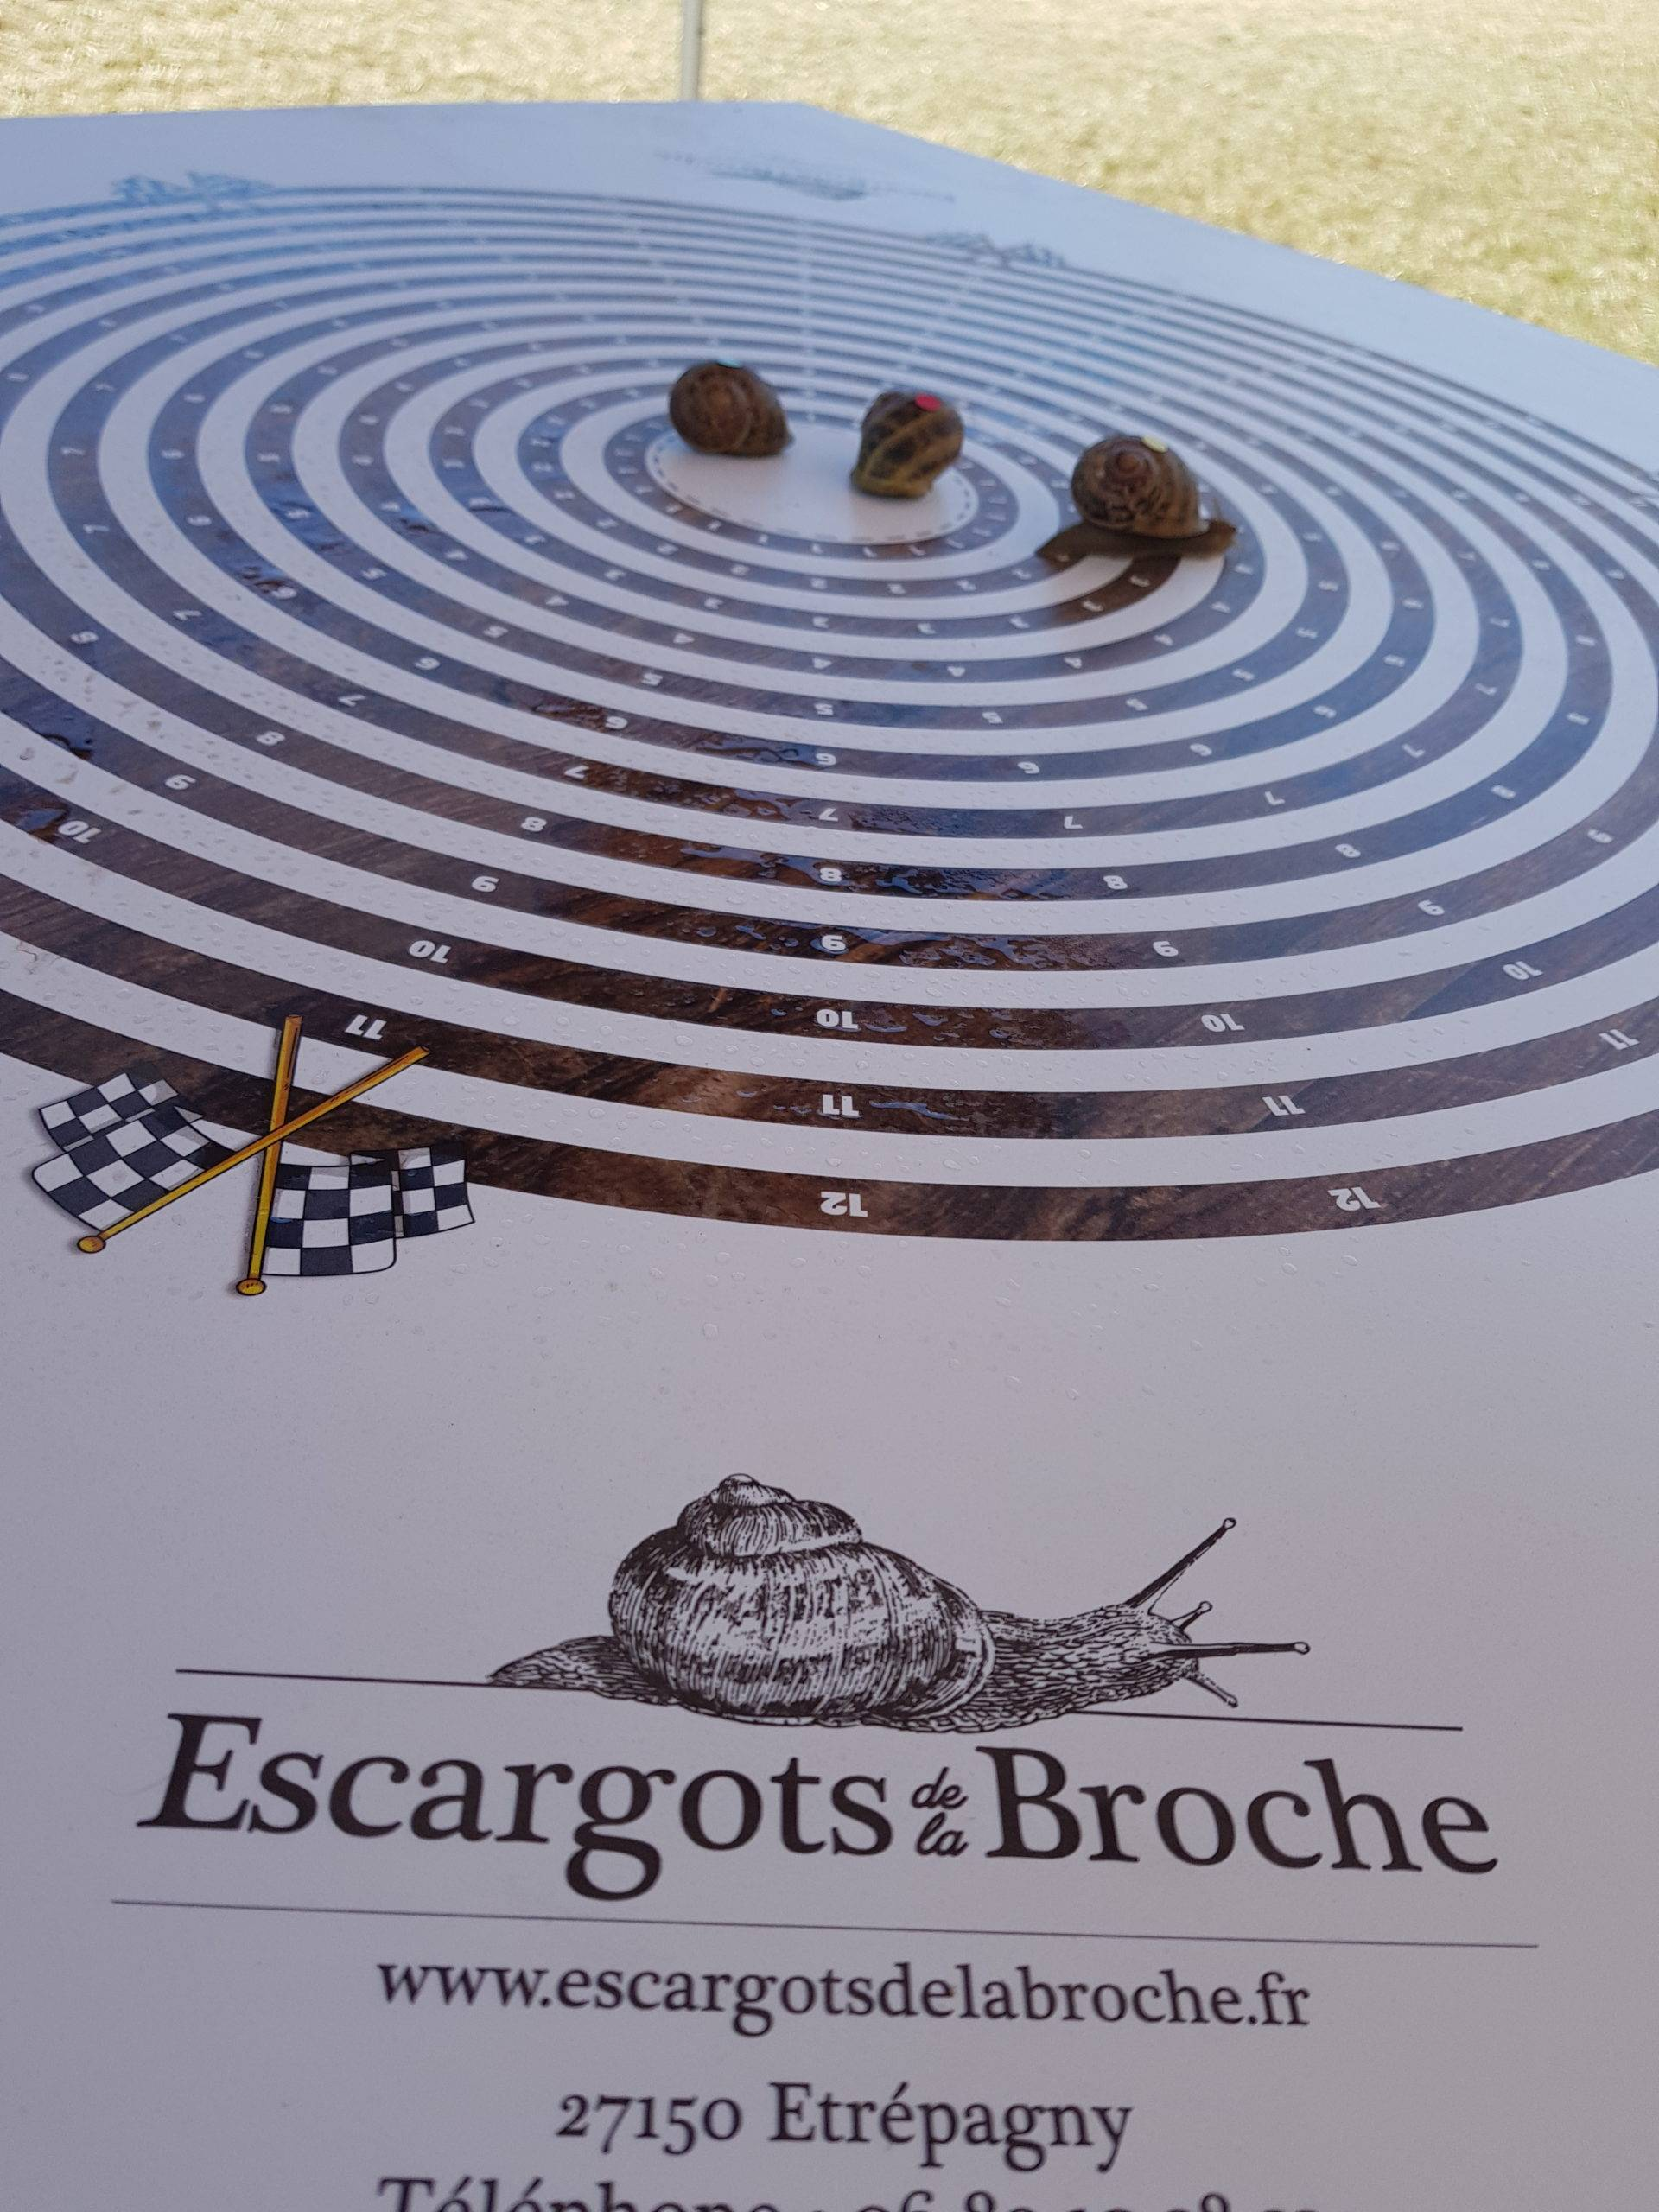 Escargots de la Broche